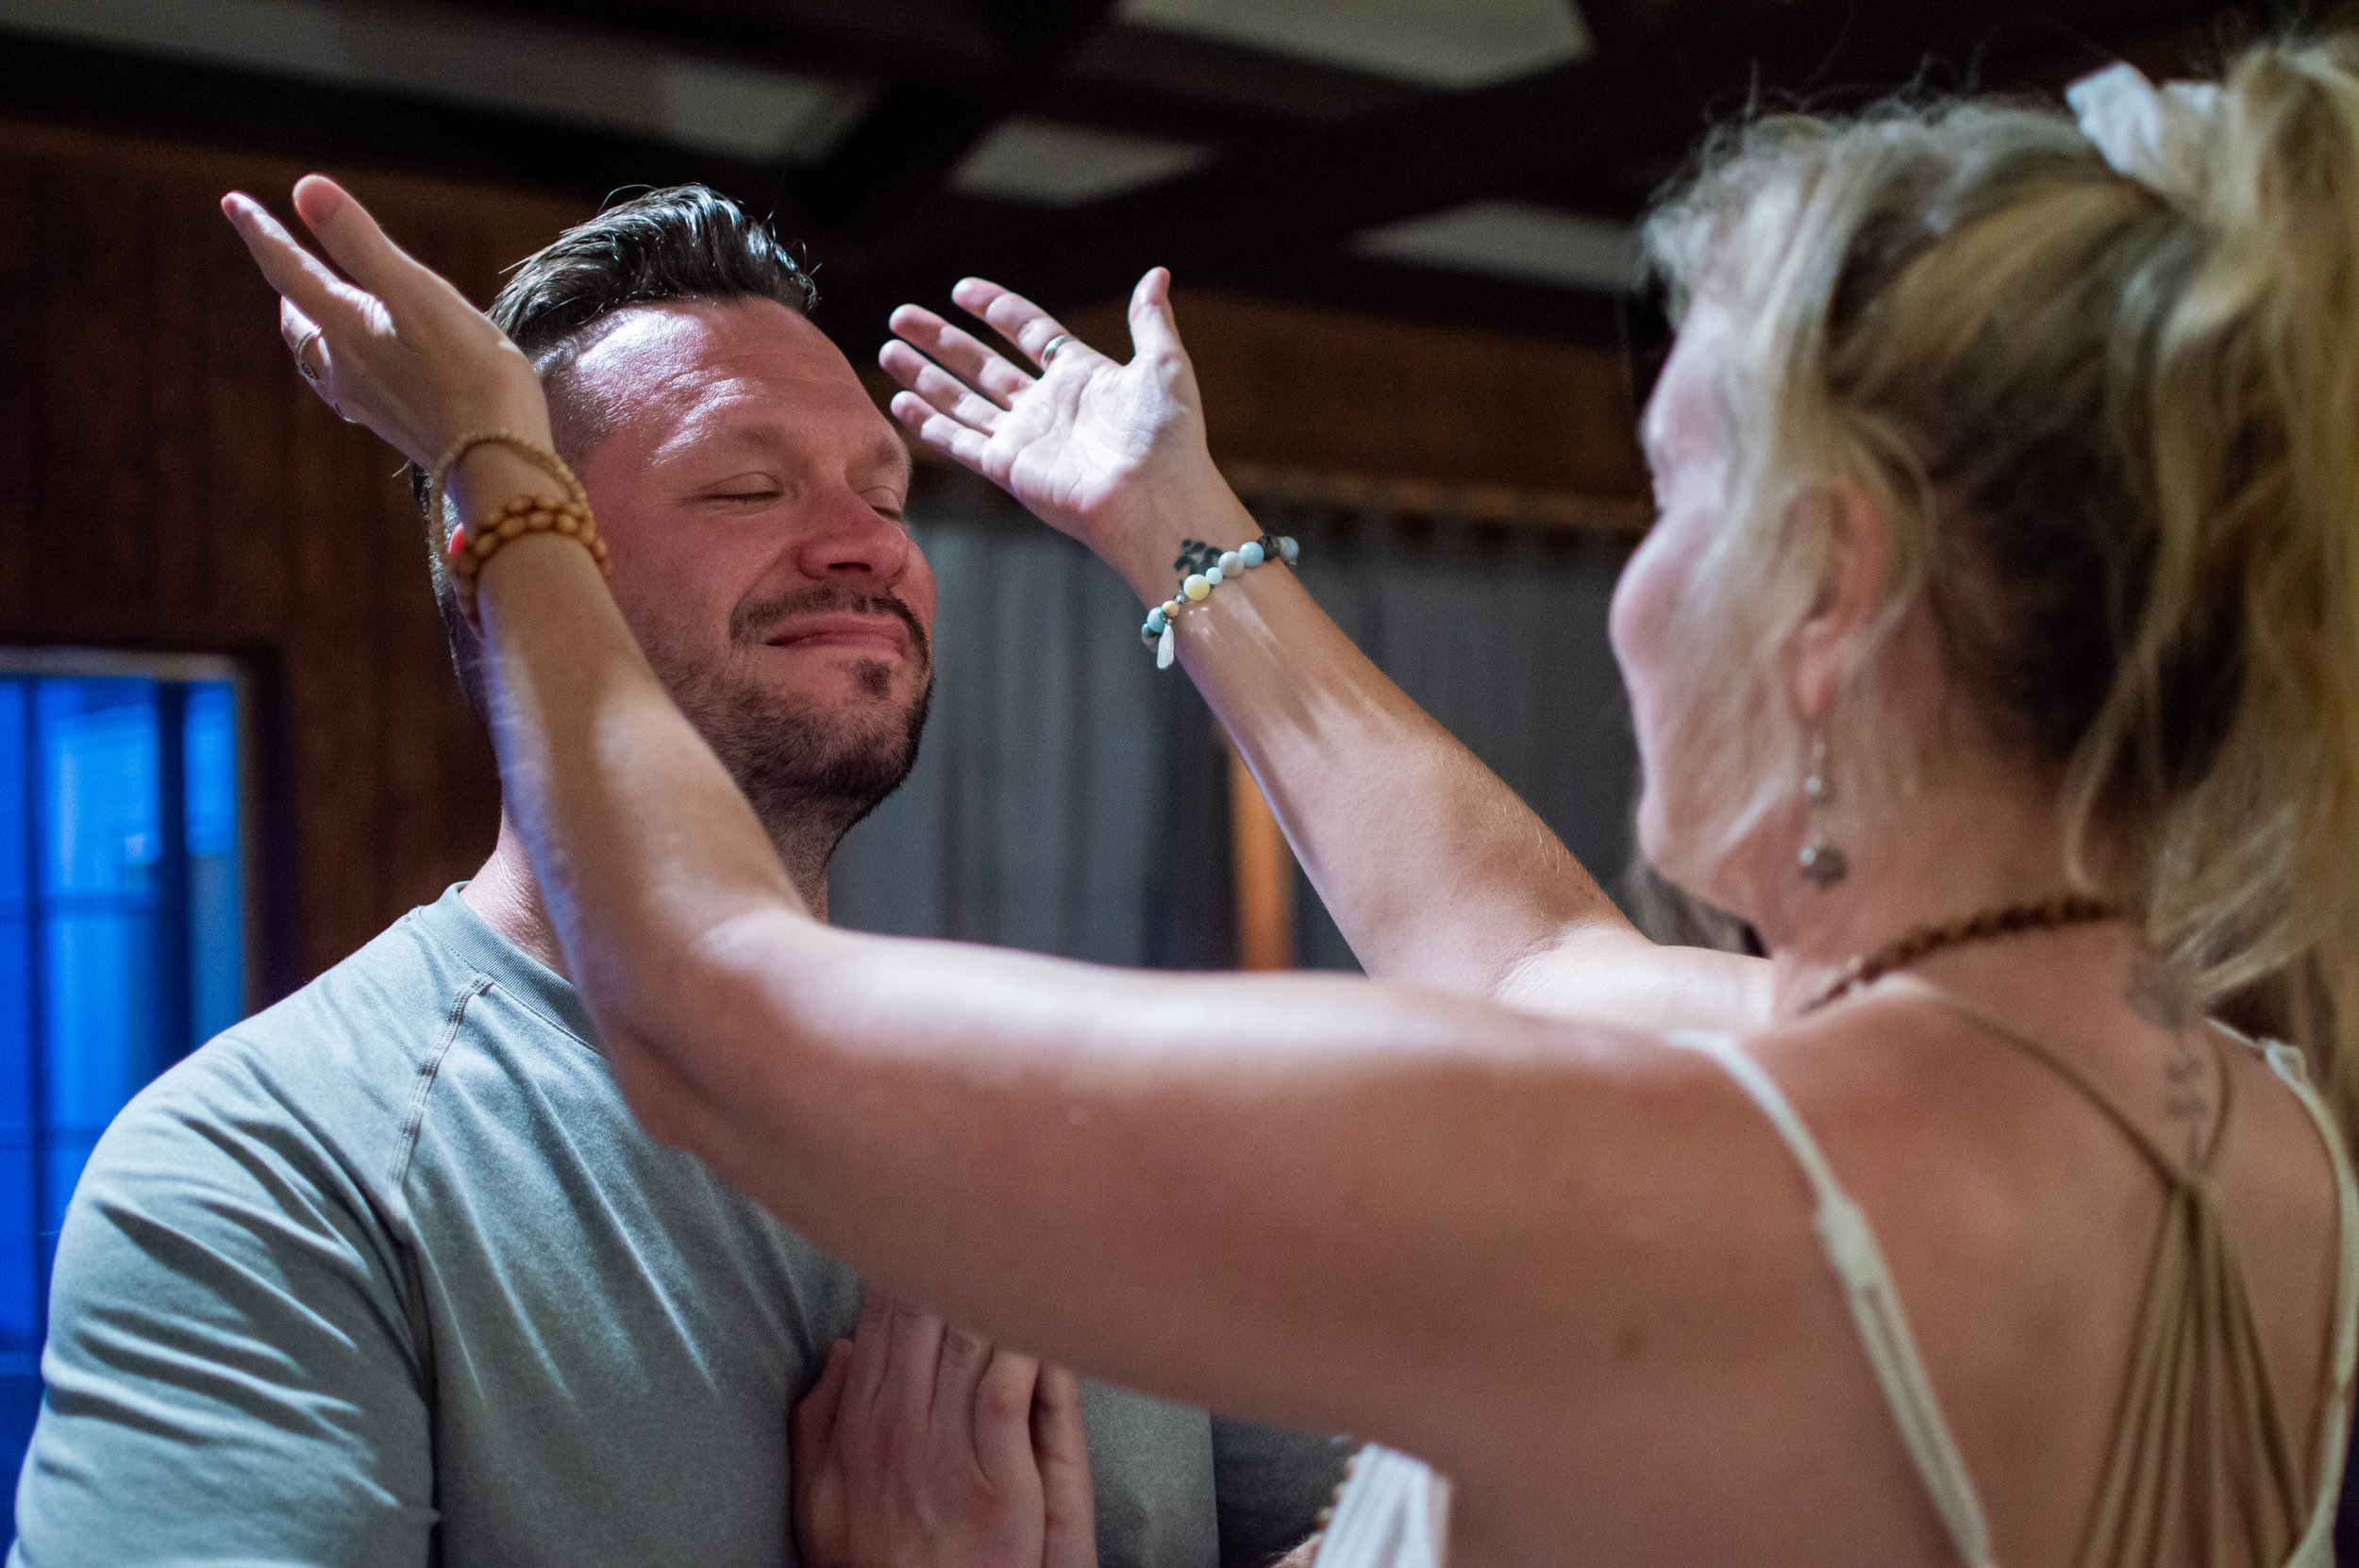 Arise-Tim-Kim-Chestney-Reiki-Retreat.jpg